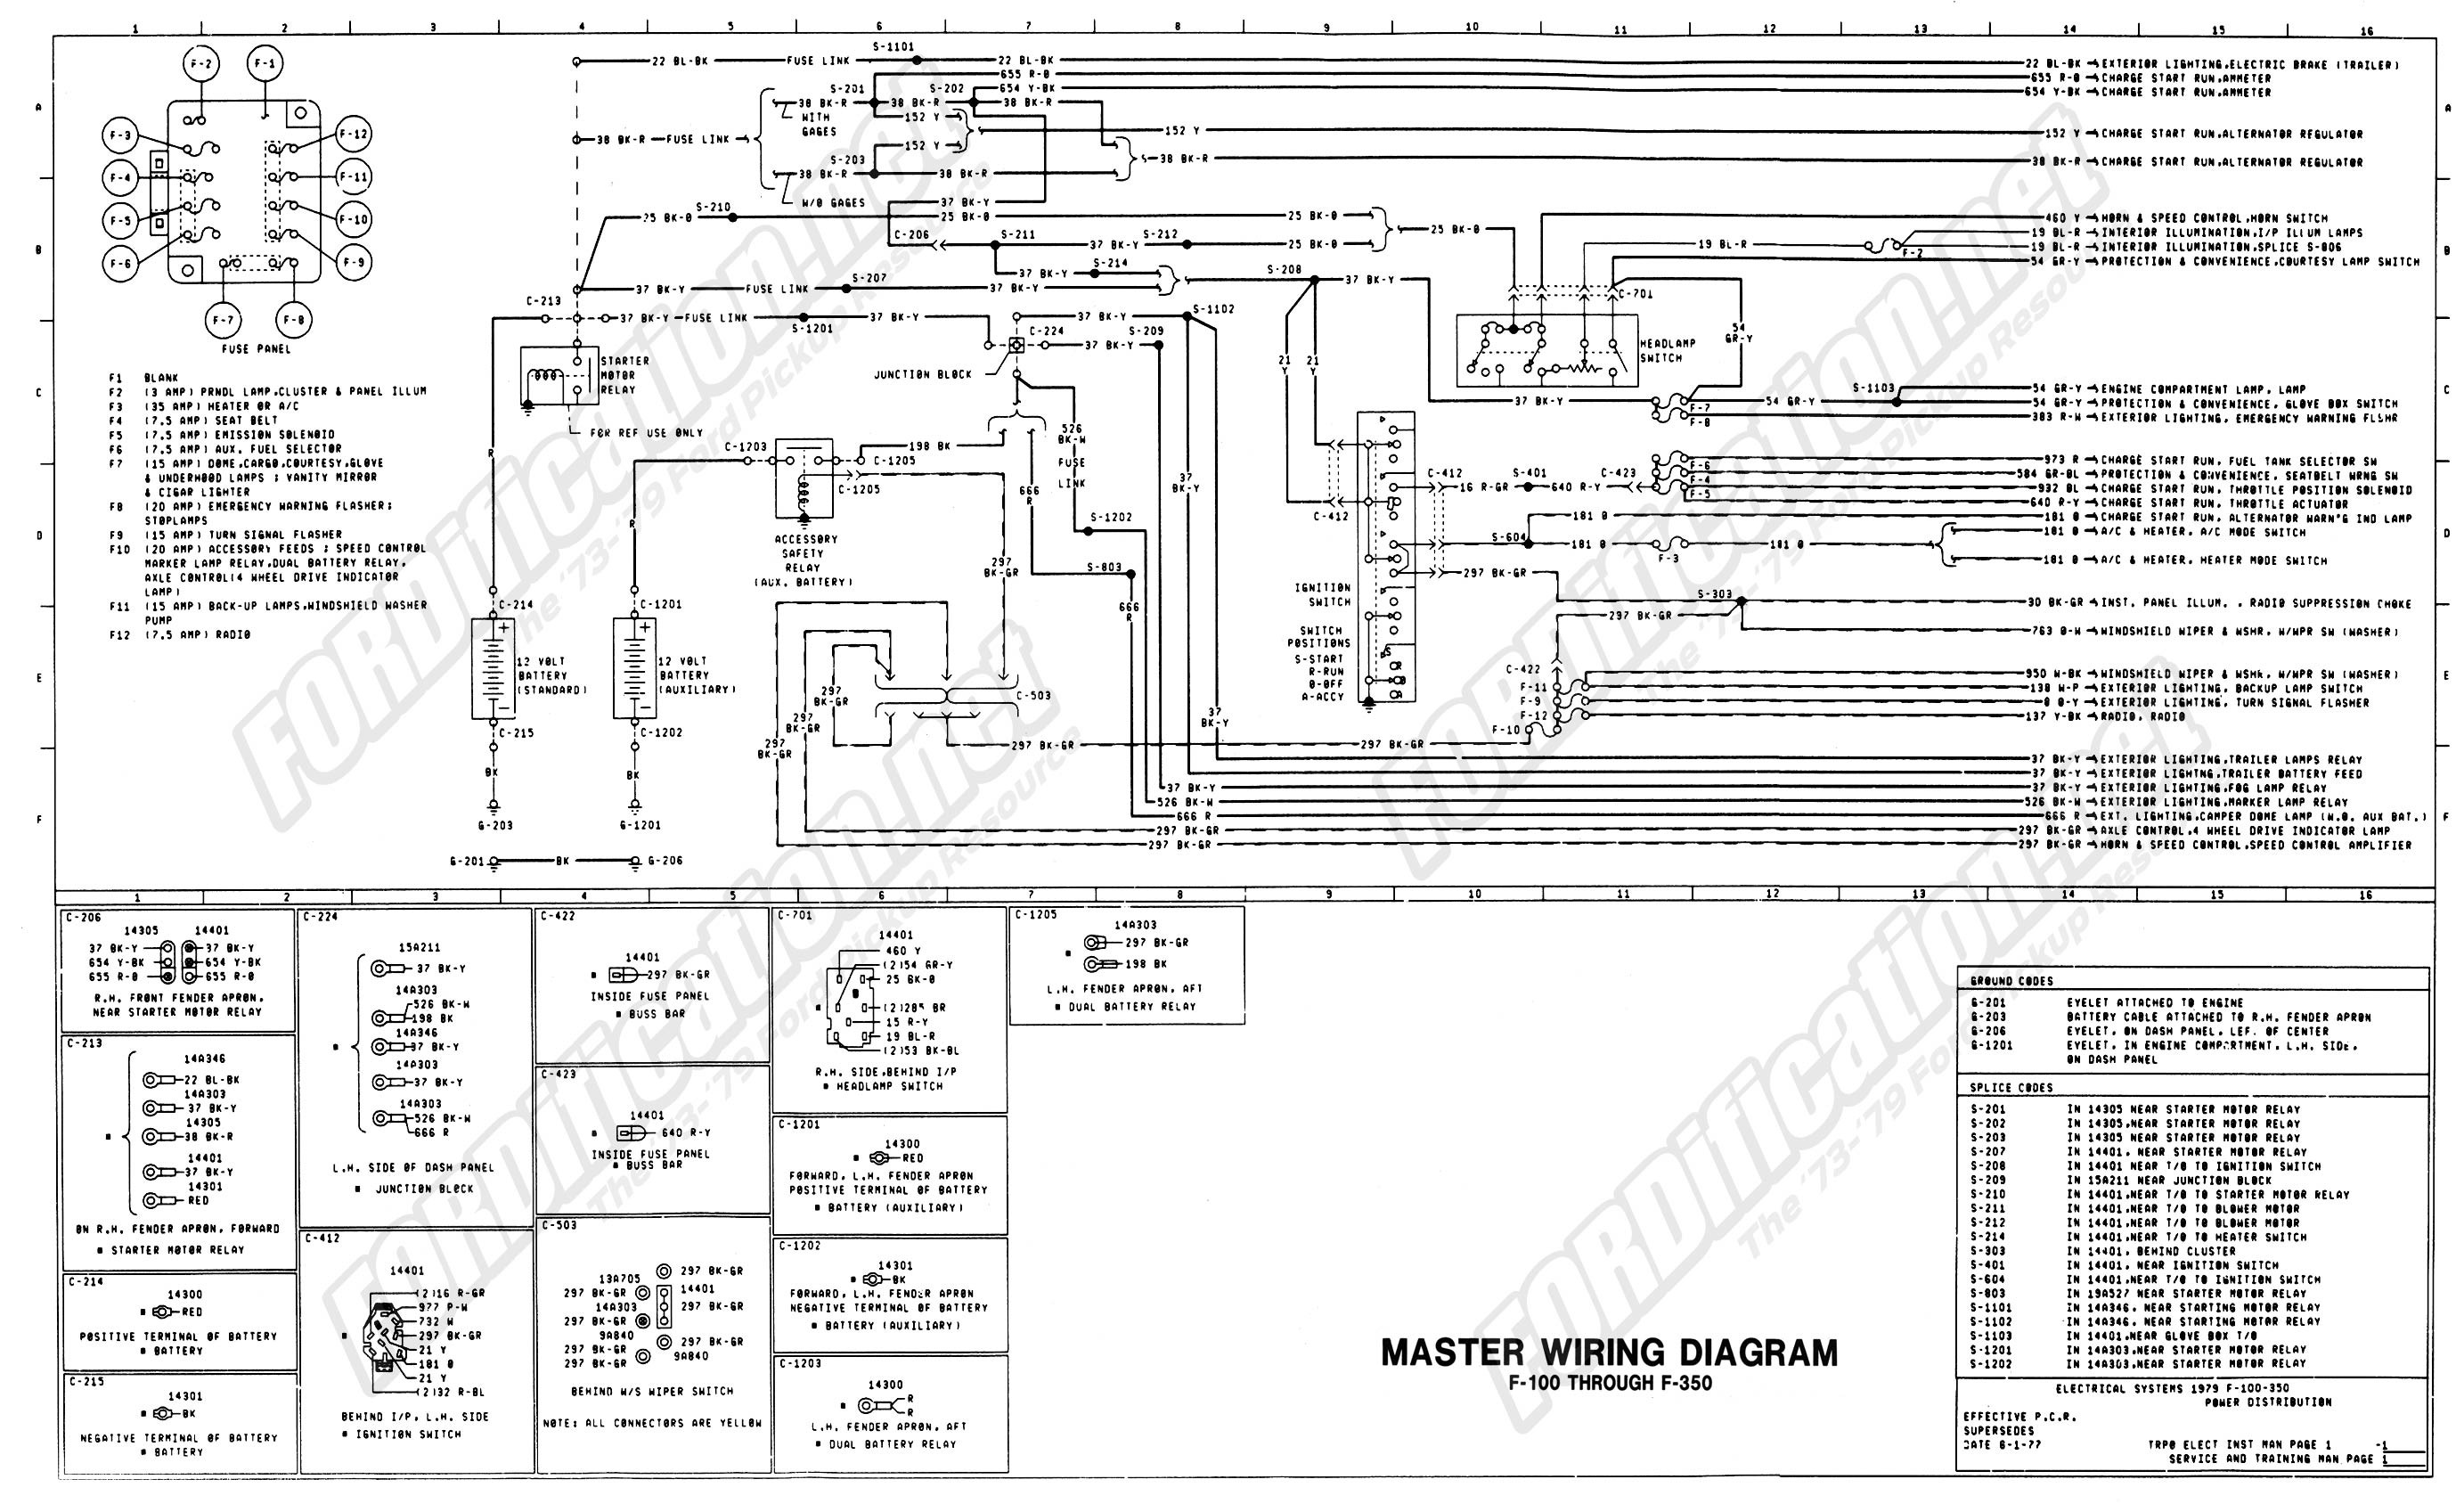 2013 ford Escape Engine Diagram 79 F150 solenoid Wiring Diagram ford Truck Enthusiasts forums Of 2013 ford Escape Engine Diagram